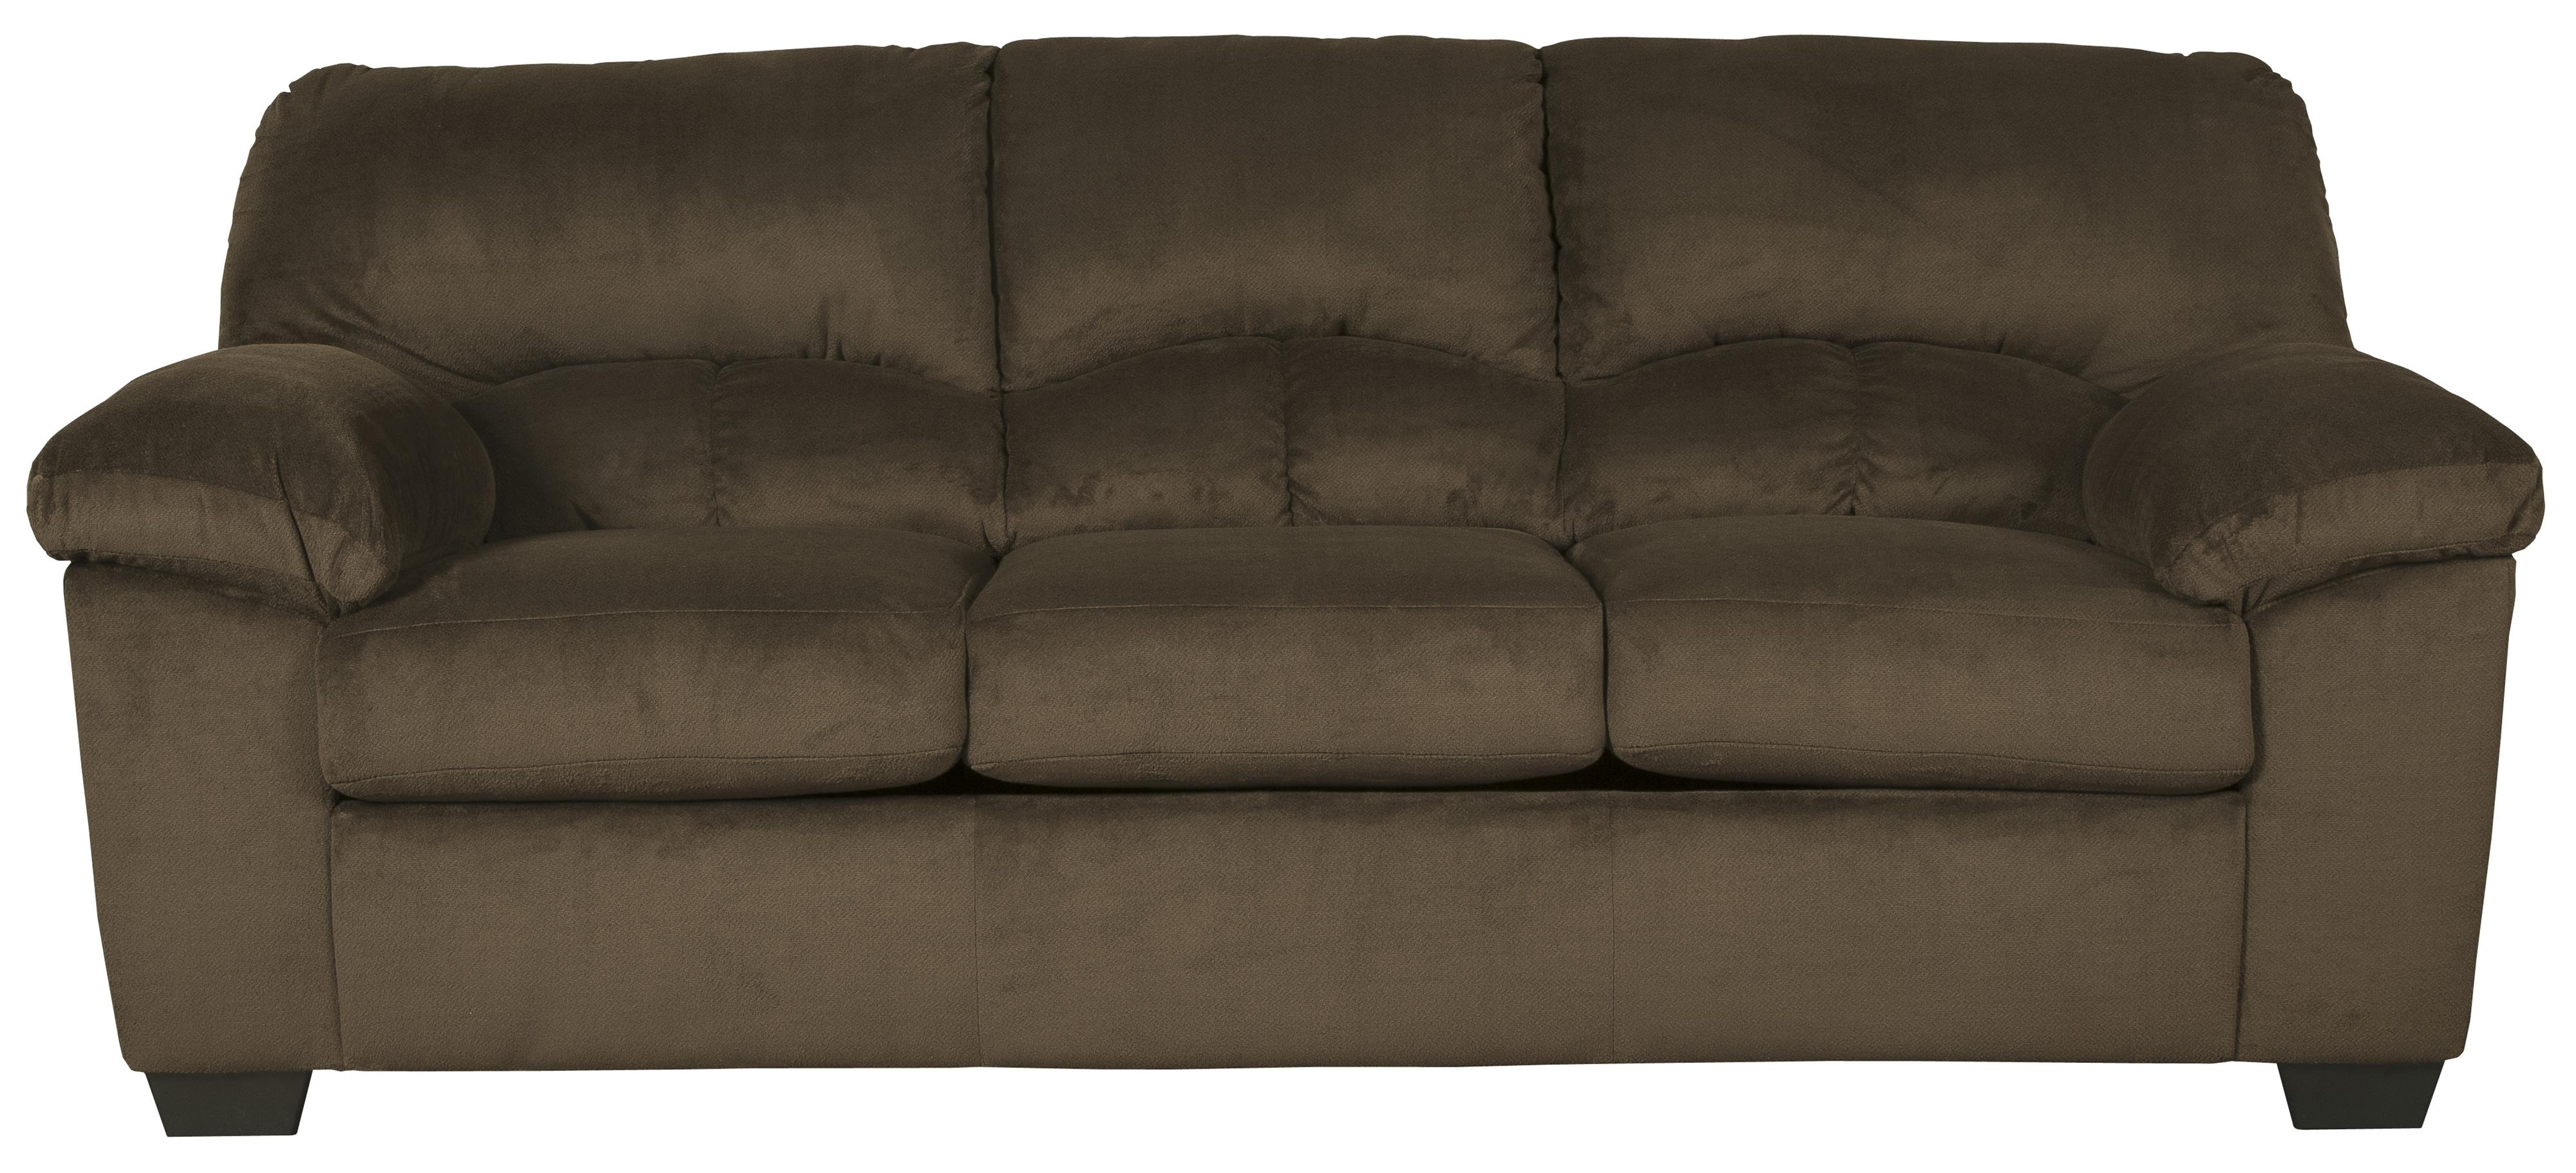 Signature Design by Ashley Dailey Sofa - Item Number: 9540338